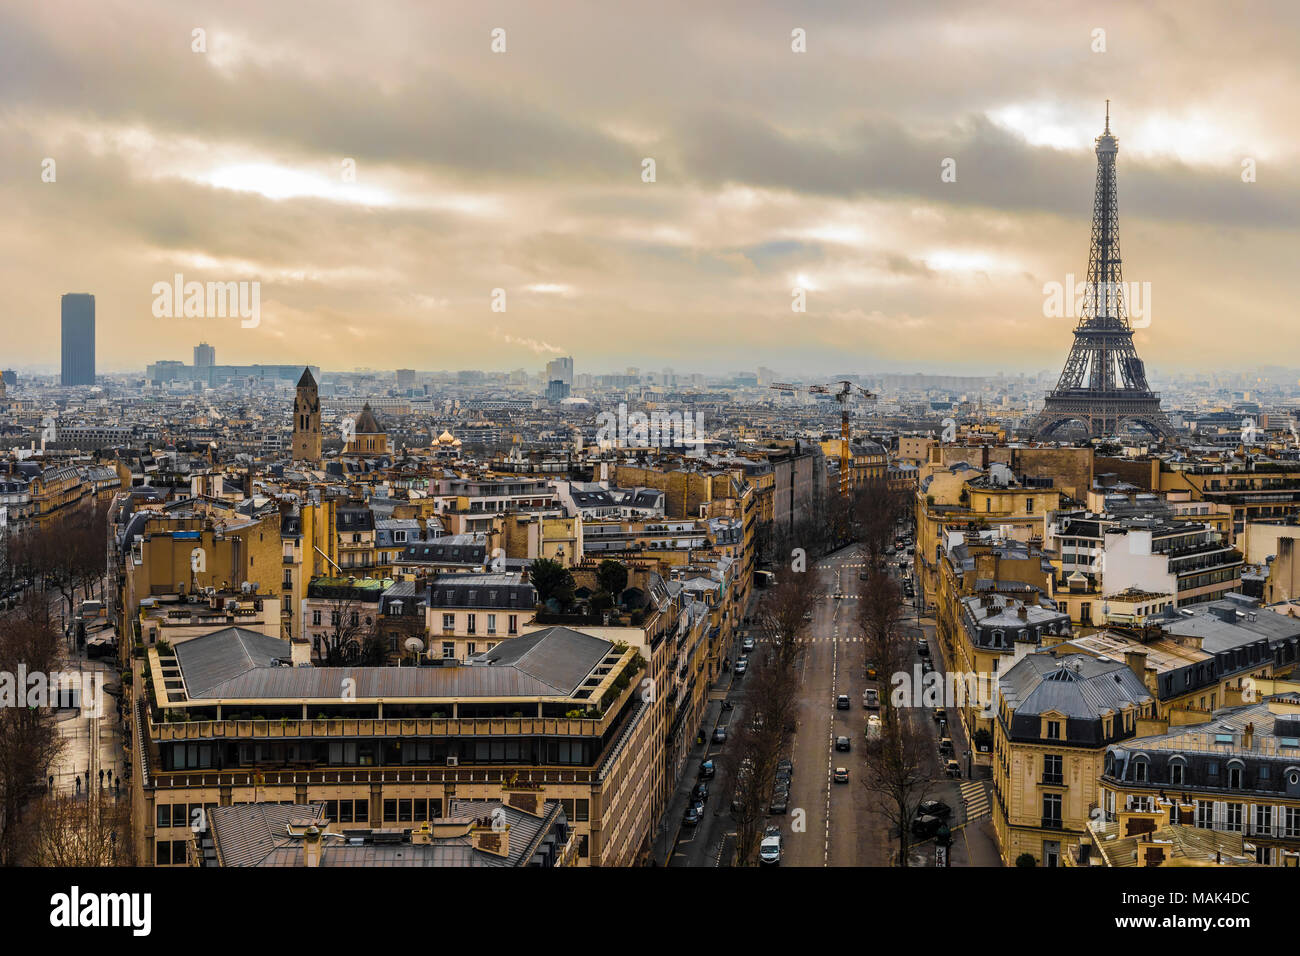 Eiffel Tower after a rainy day in the romantic city of Paris - Stock Image